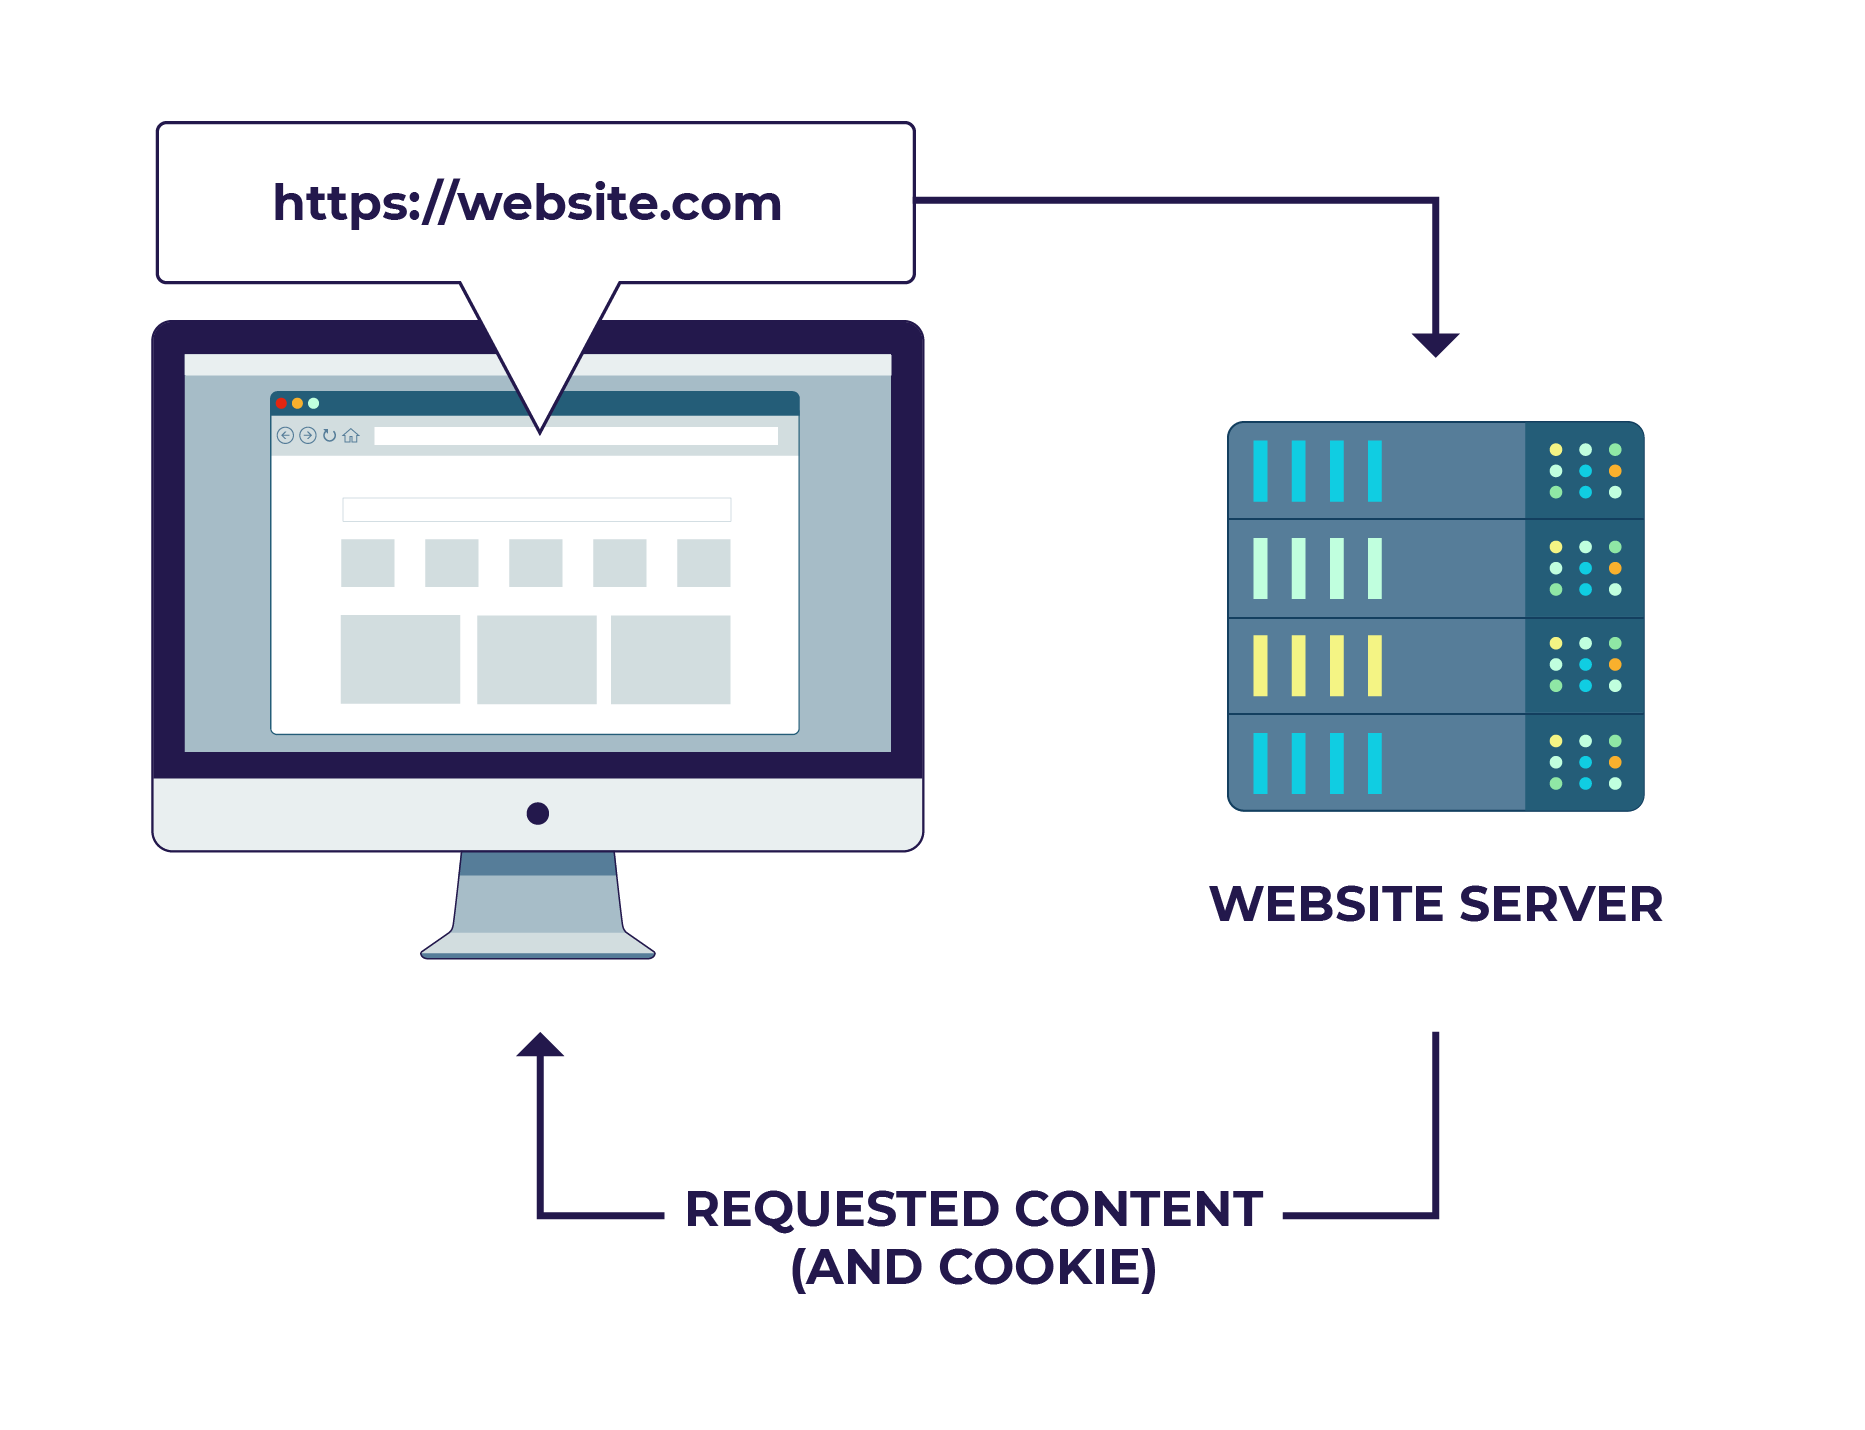 //website.com. The server responds with website content and a cookie.